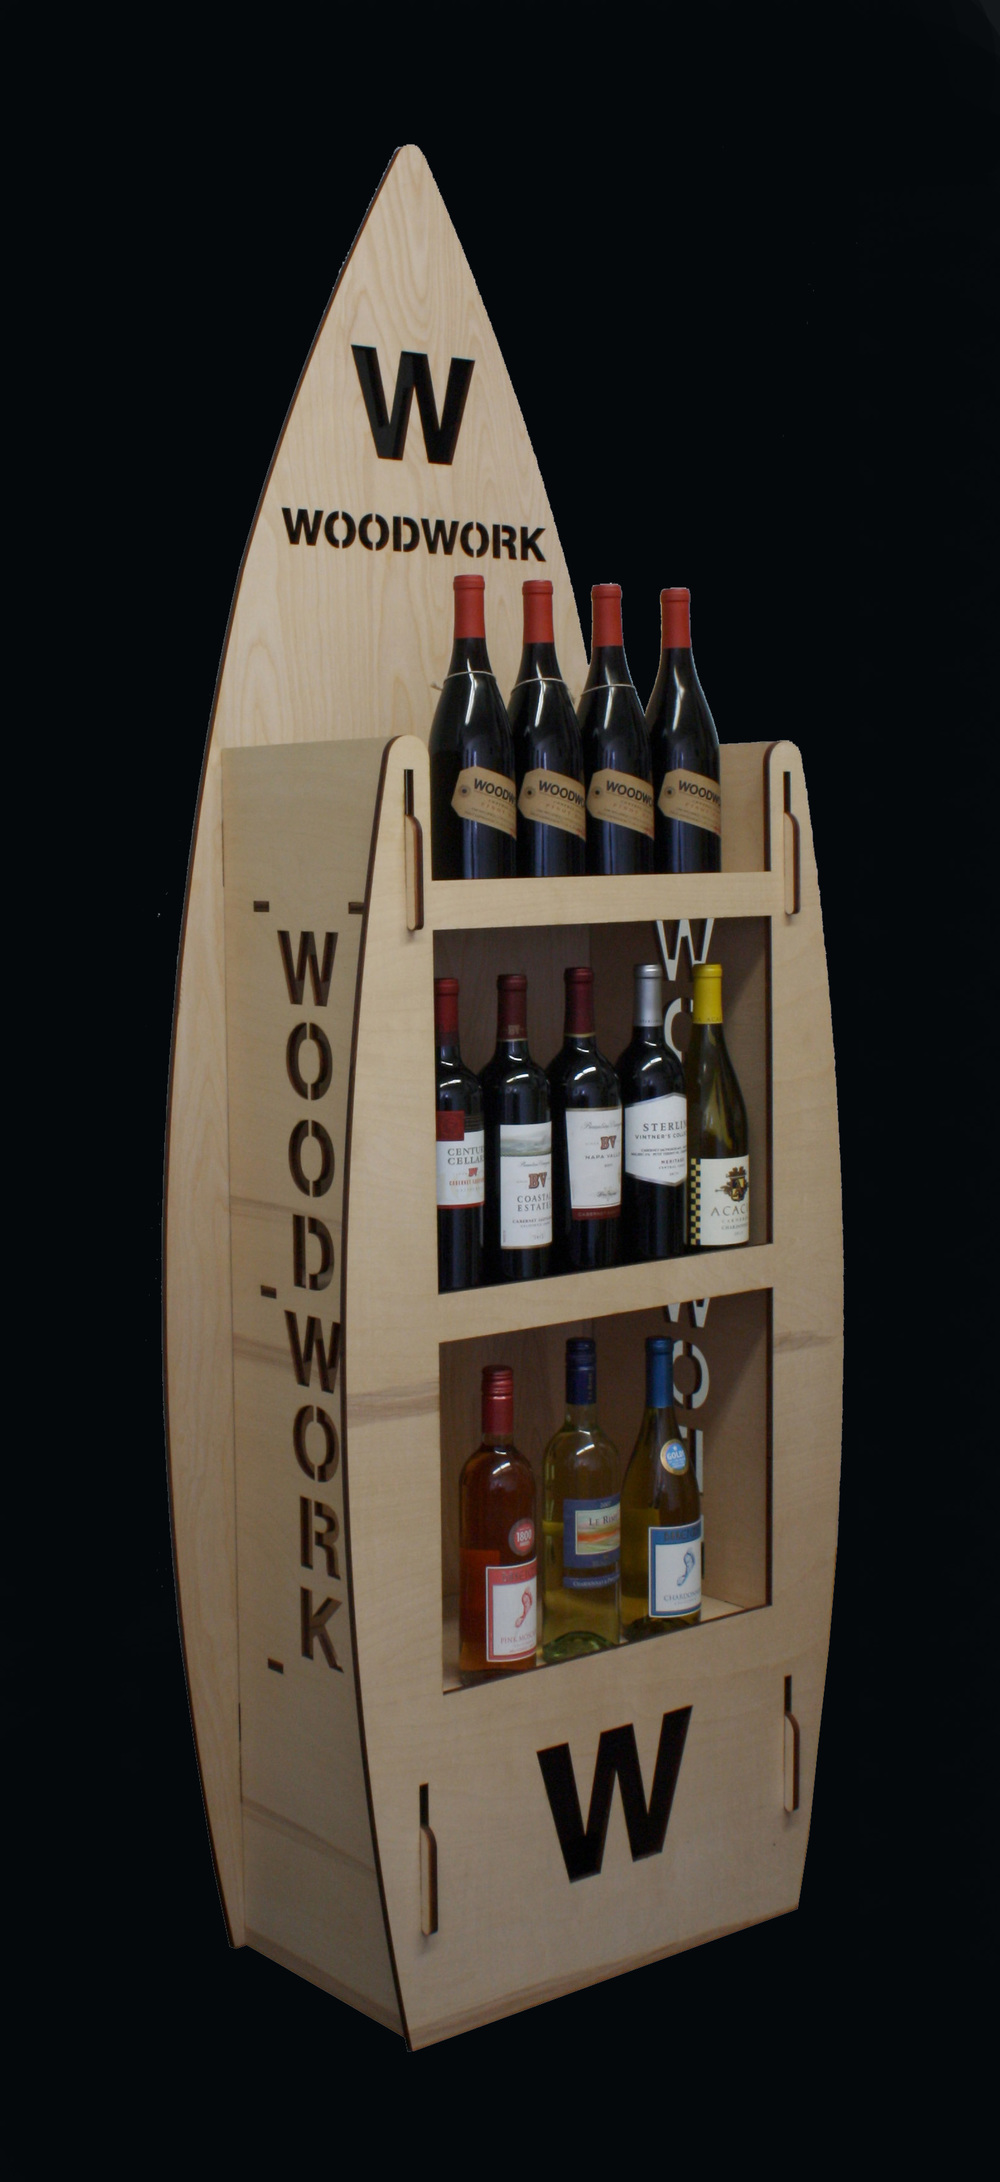 Woodwork WIne 3 Shelf Display.jpg